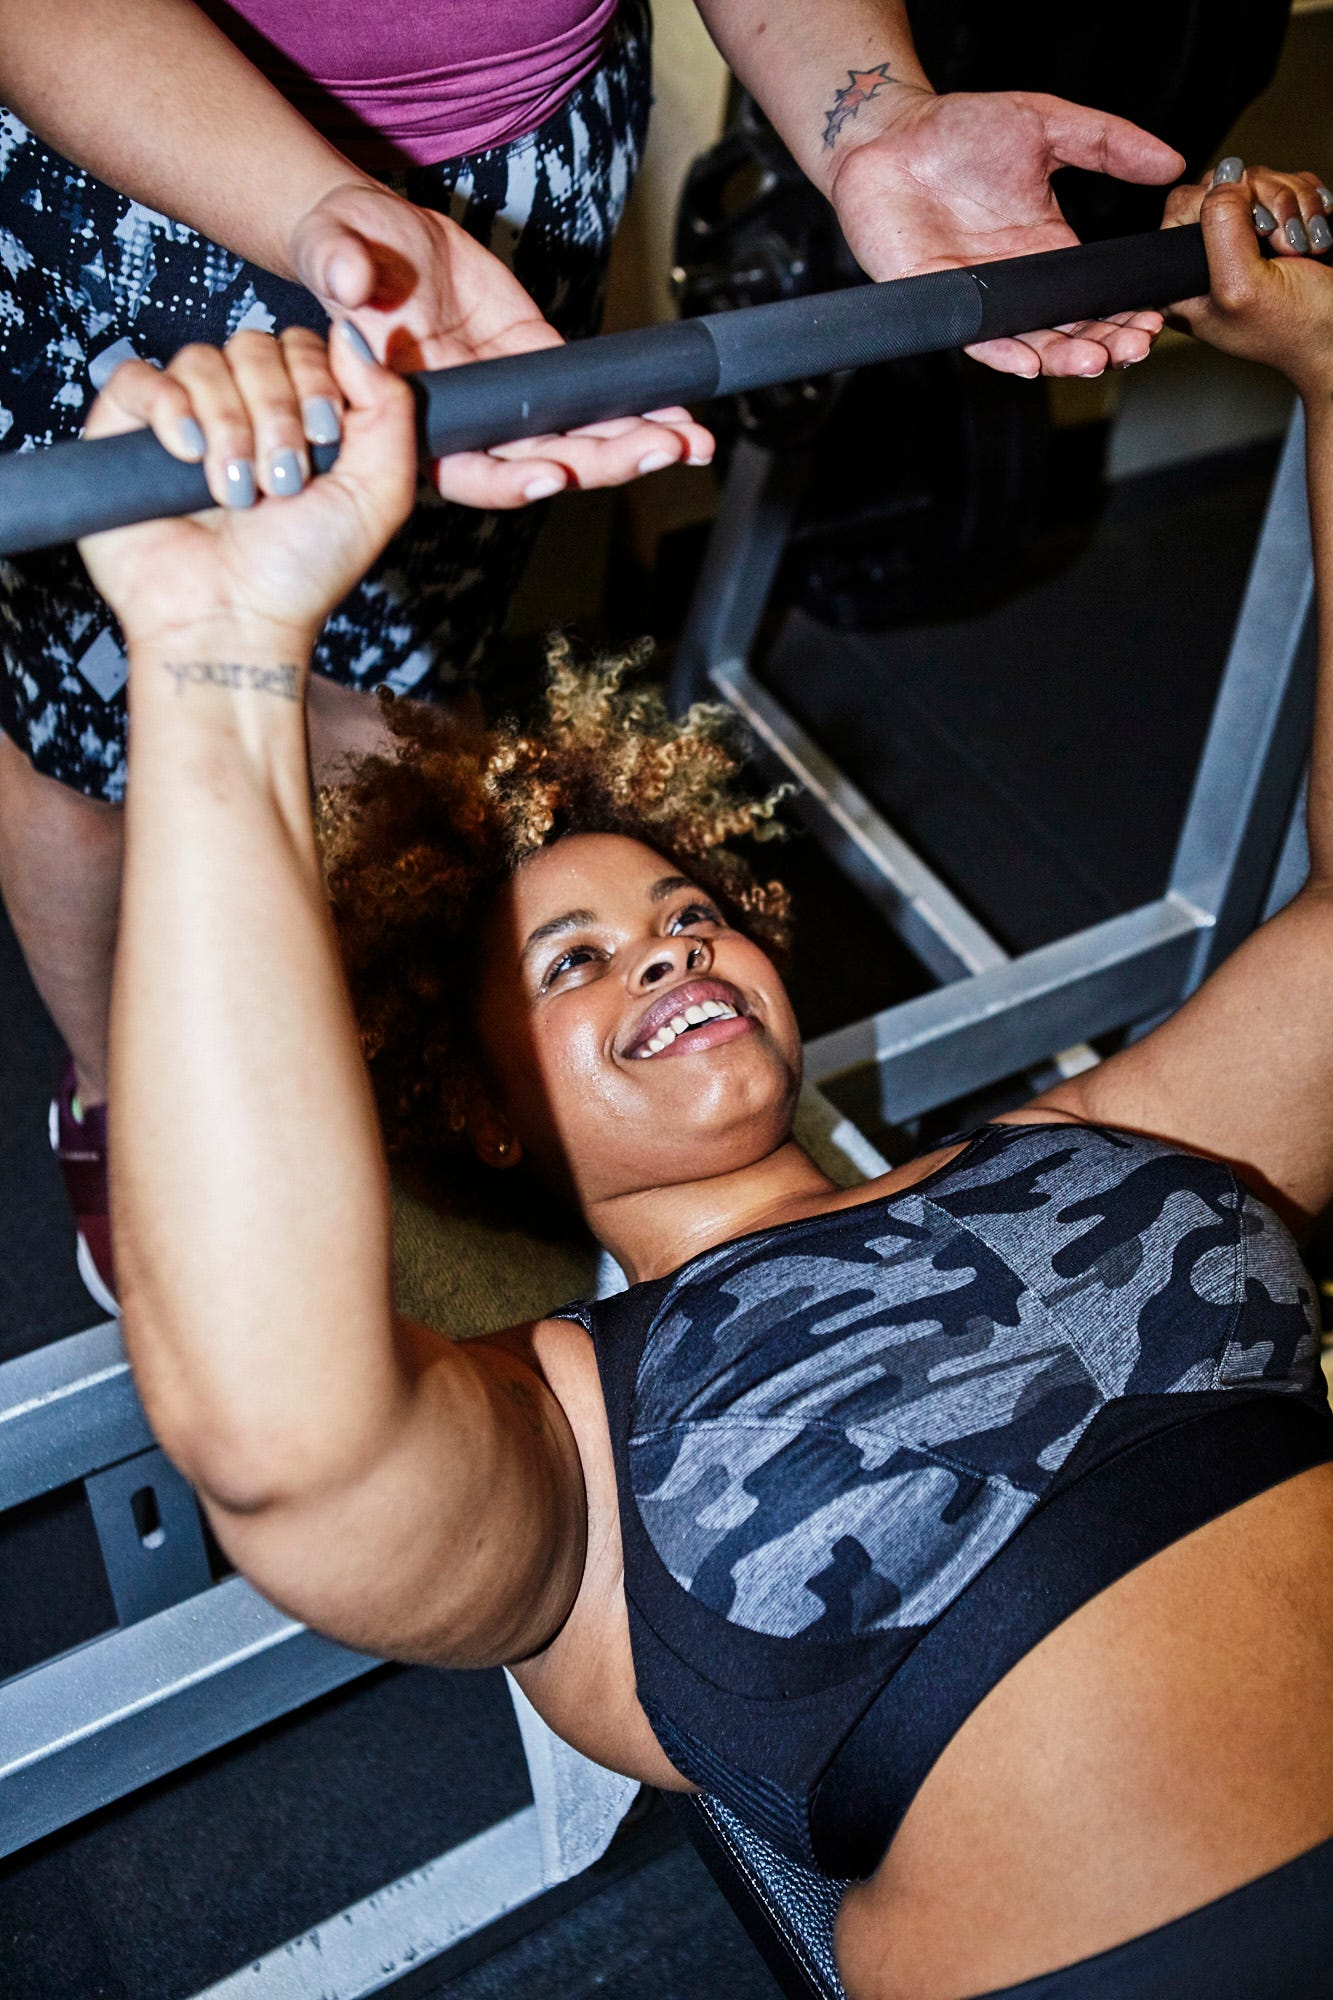 6 Fitness Trends that Need to Disappear in 2019 6 Fitness Trends that Need to Disappear in 2019 new photo